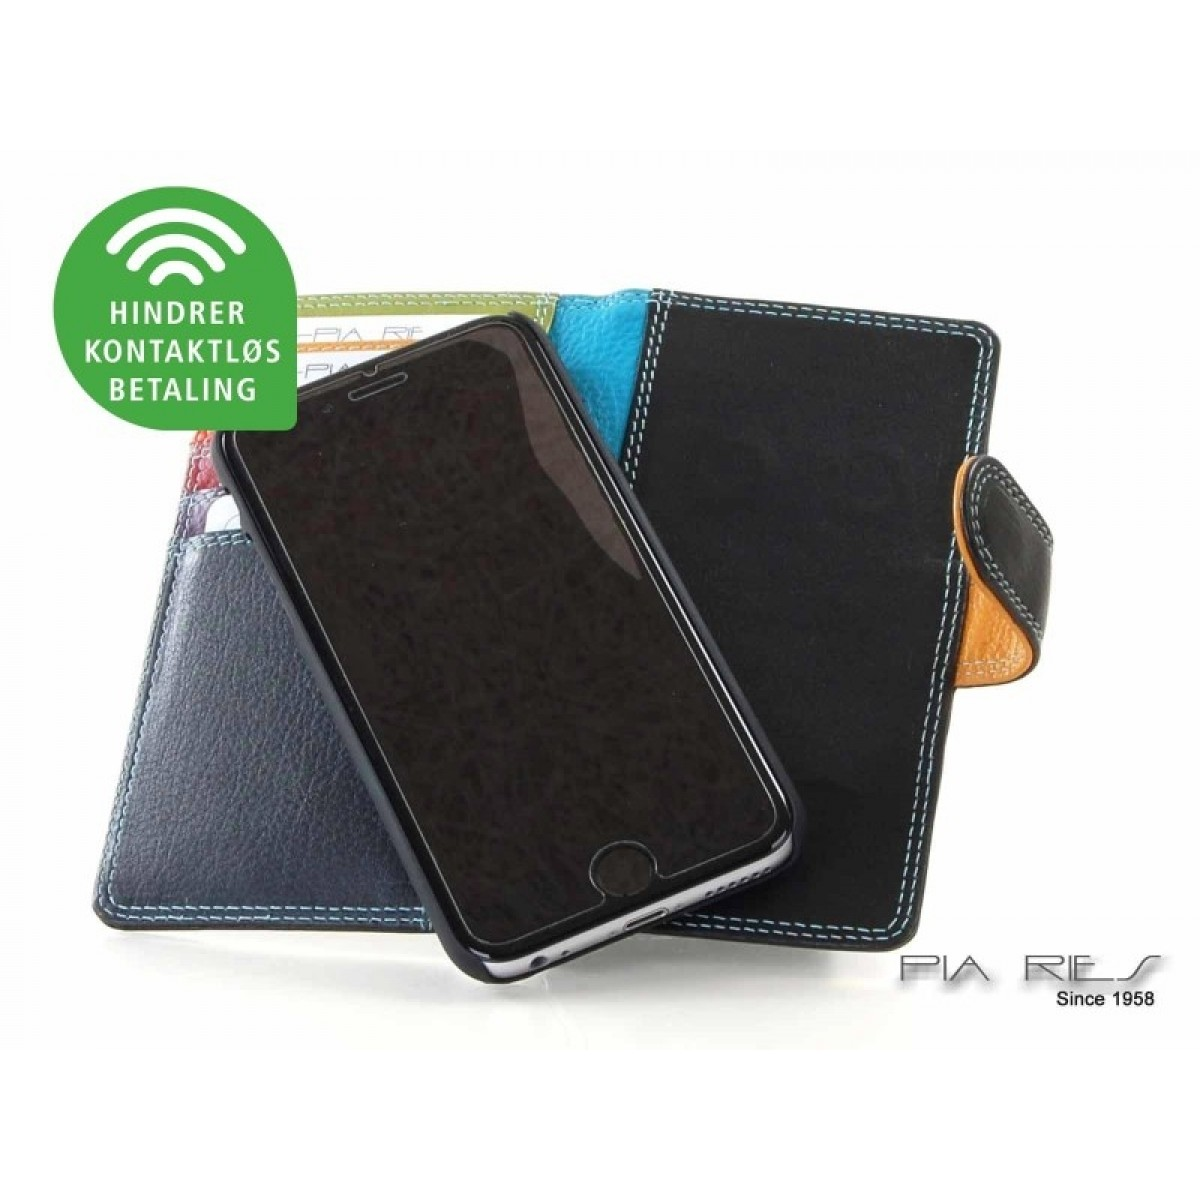 Etui I-phone 7/8 tropical RFID-31